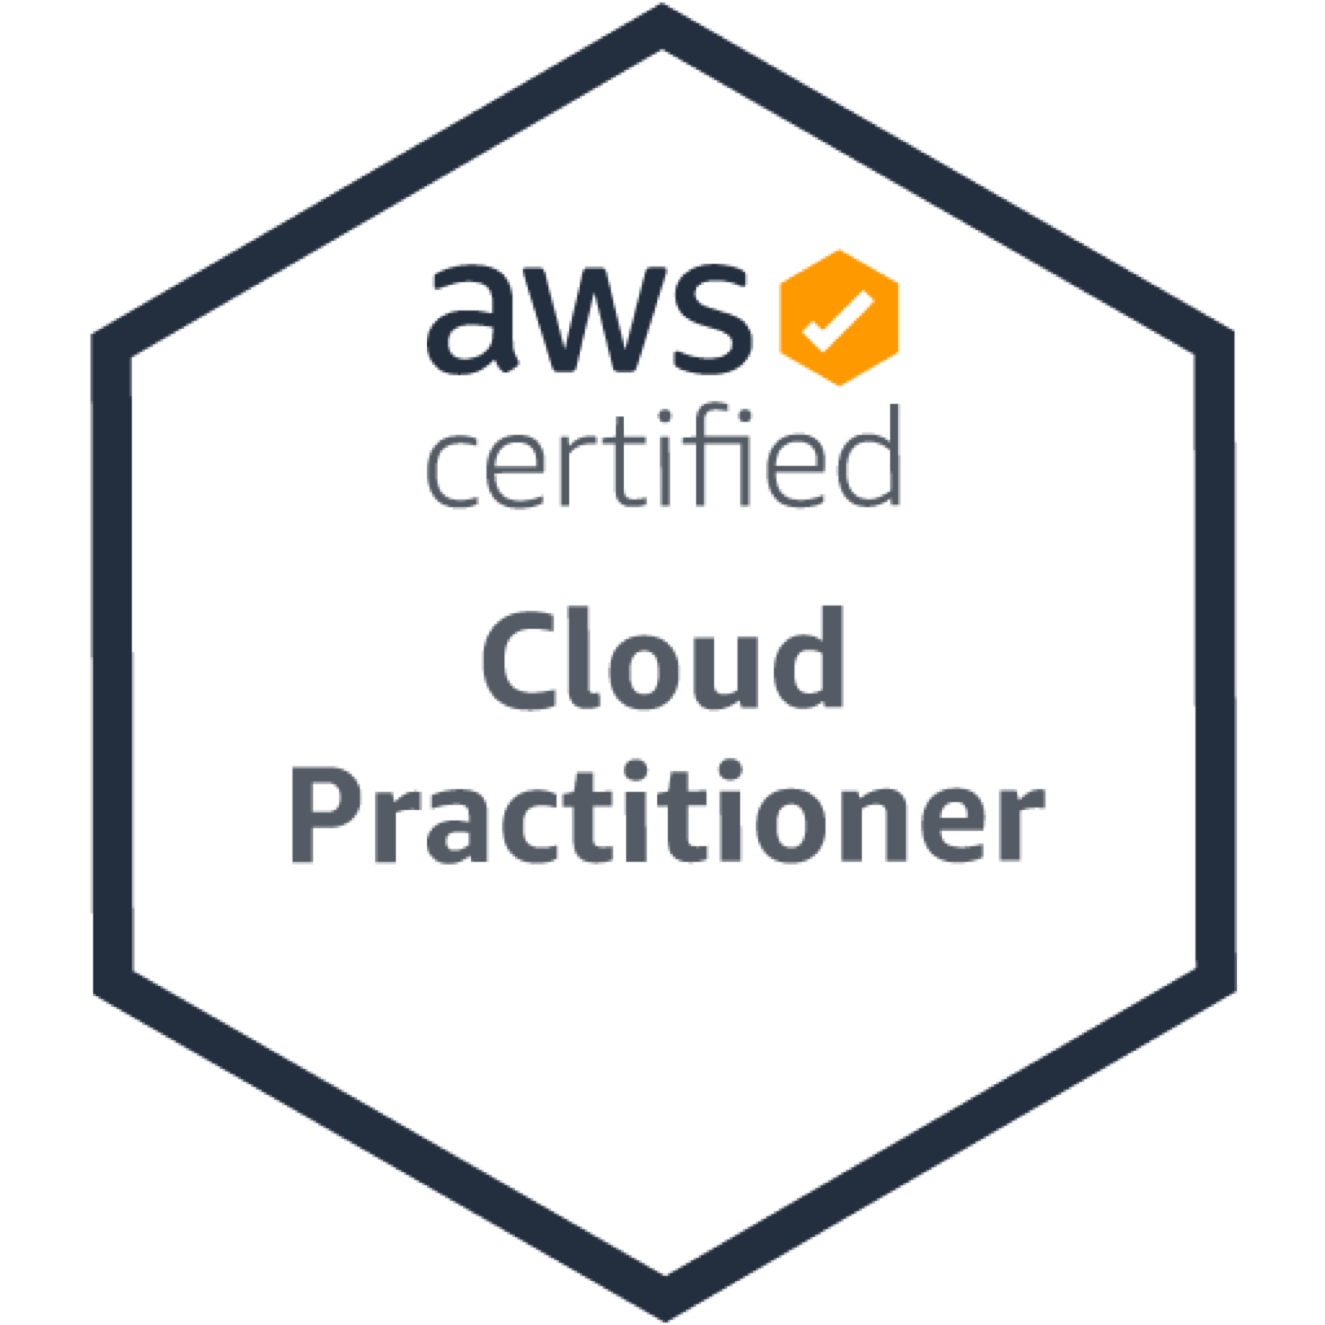 certification badge for Cloud Practitioner